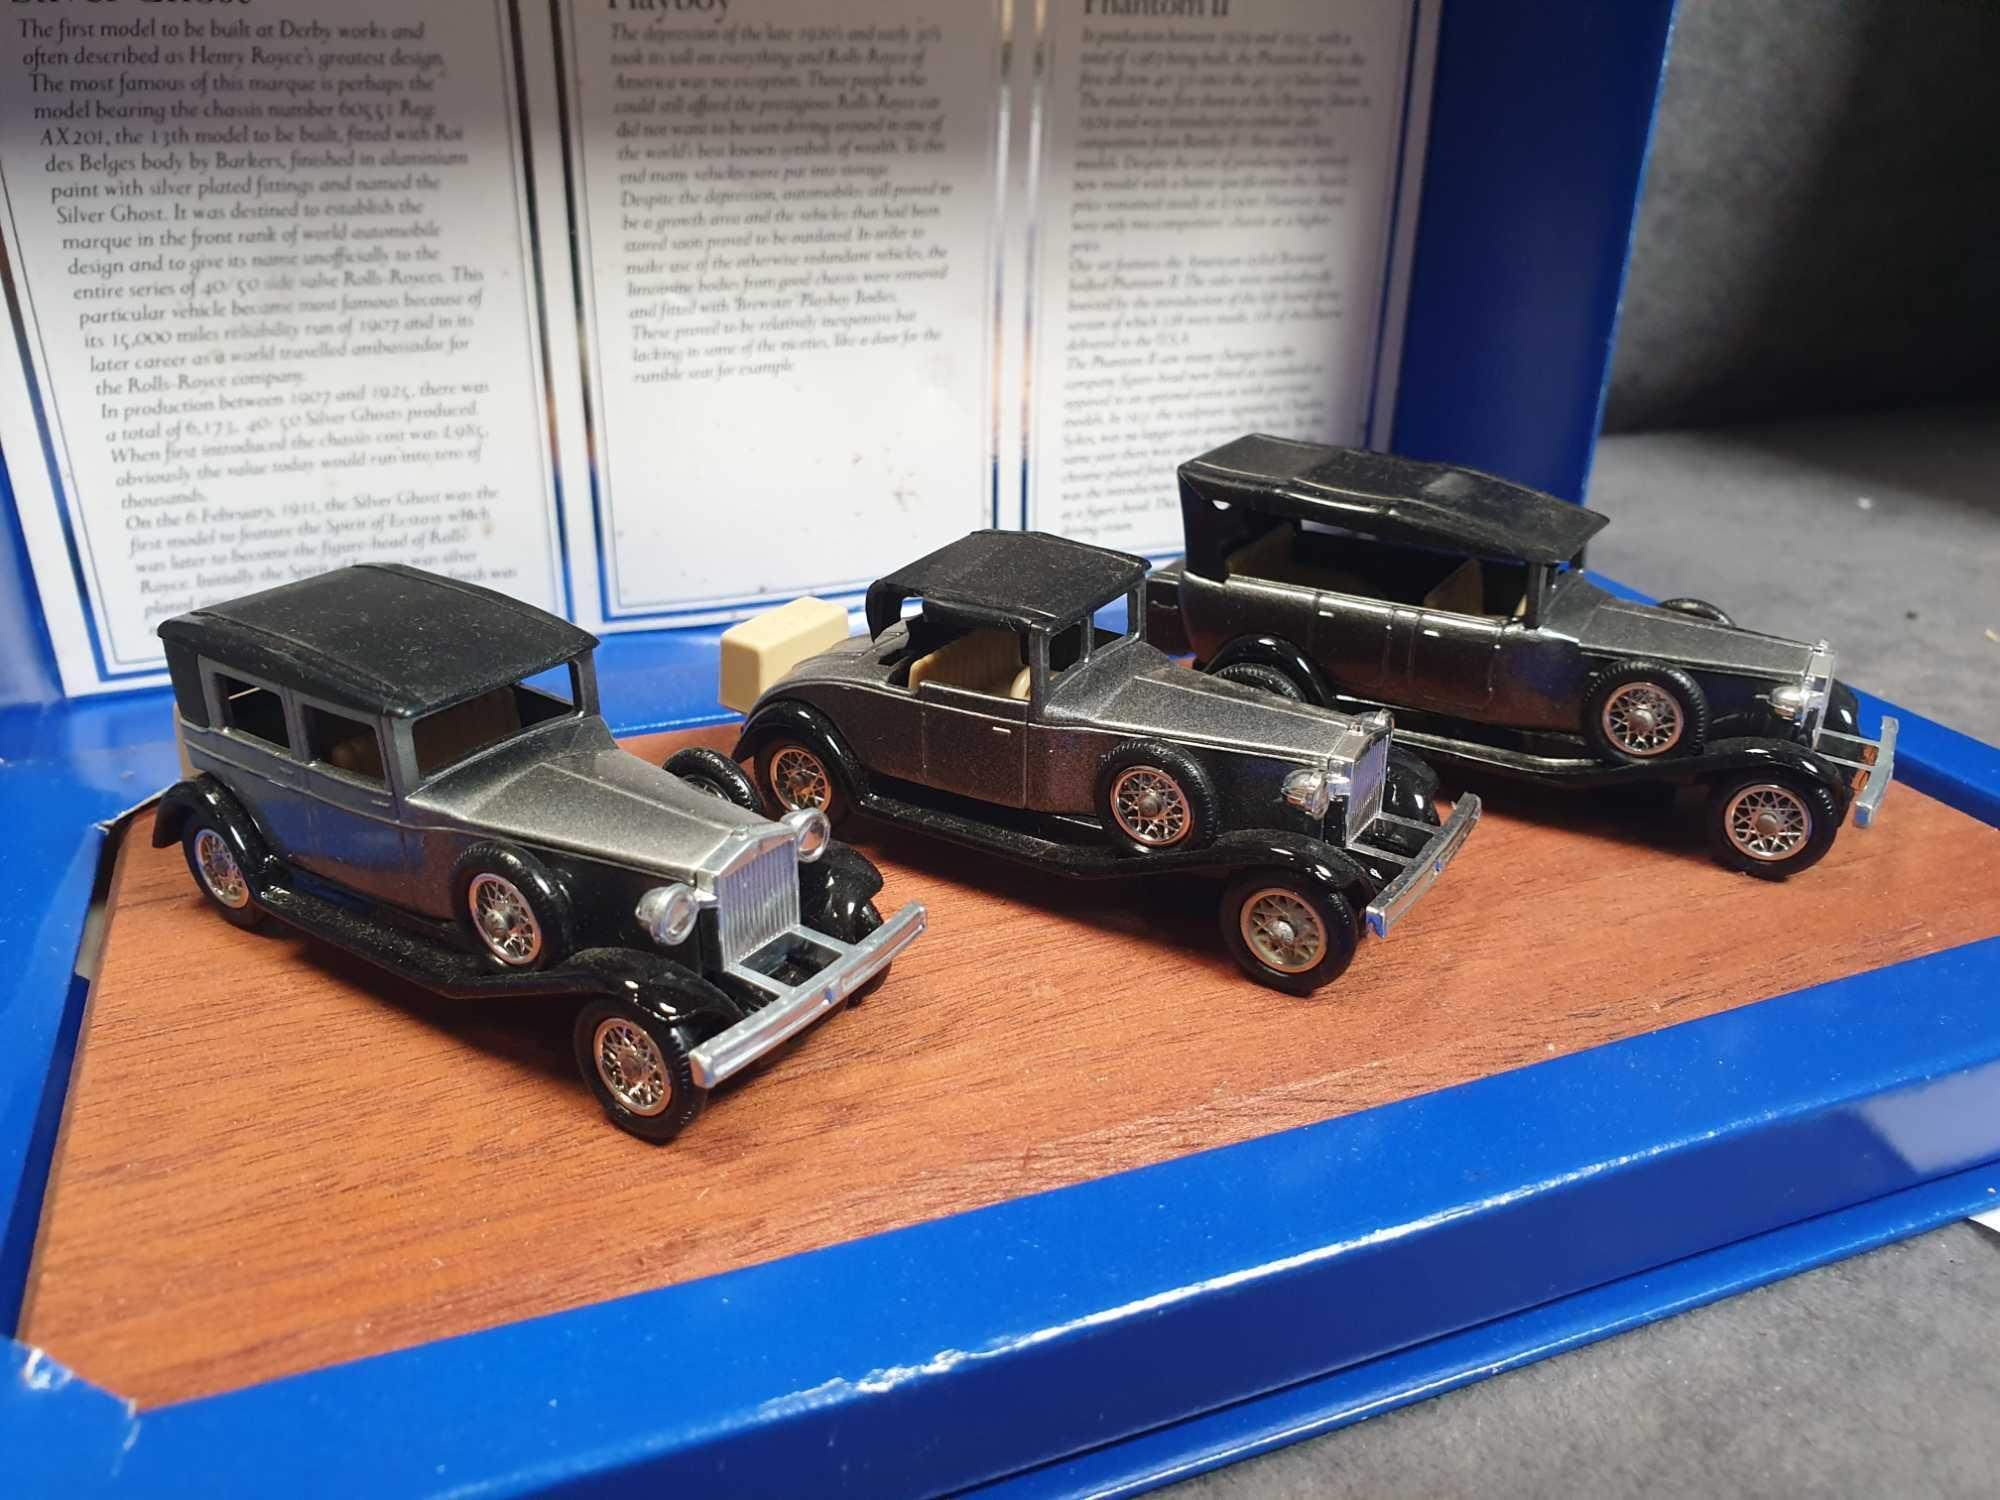 Lledo Vintage Rolls Royce Collection 3 Cars On Wooden Display Plinth Mint Model - Image 2 of 4